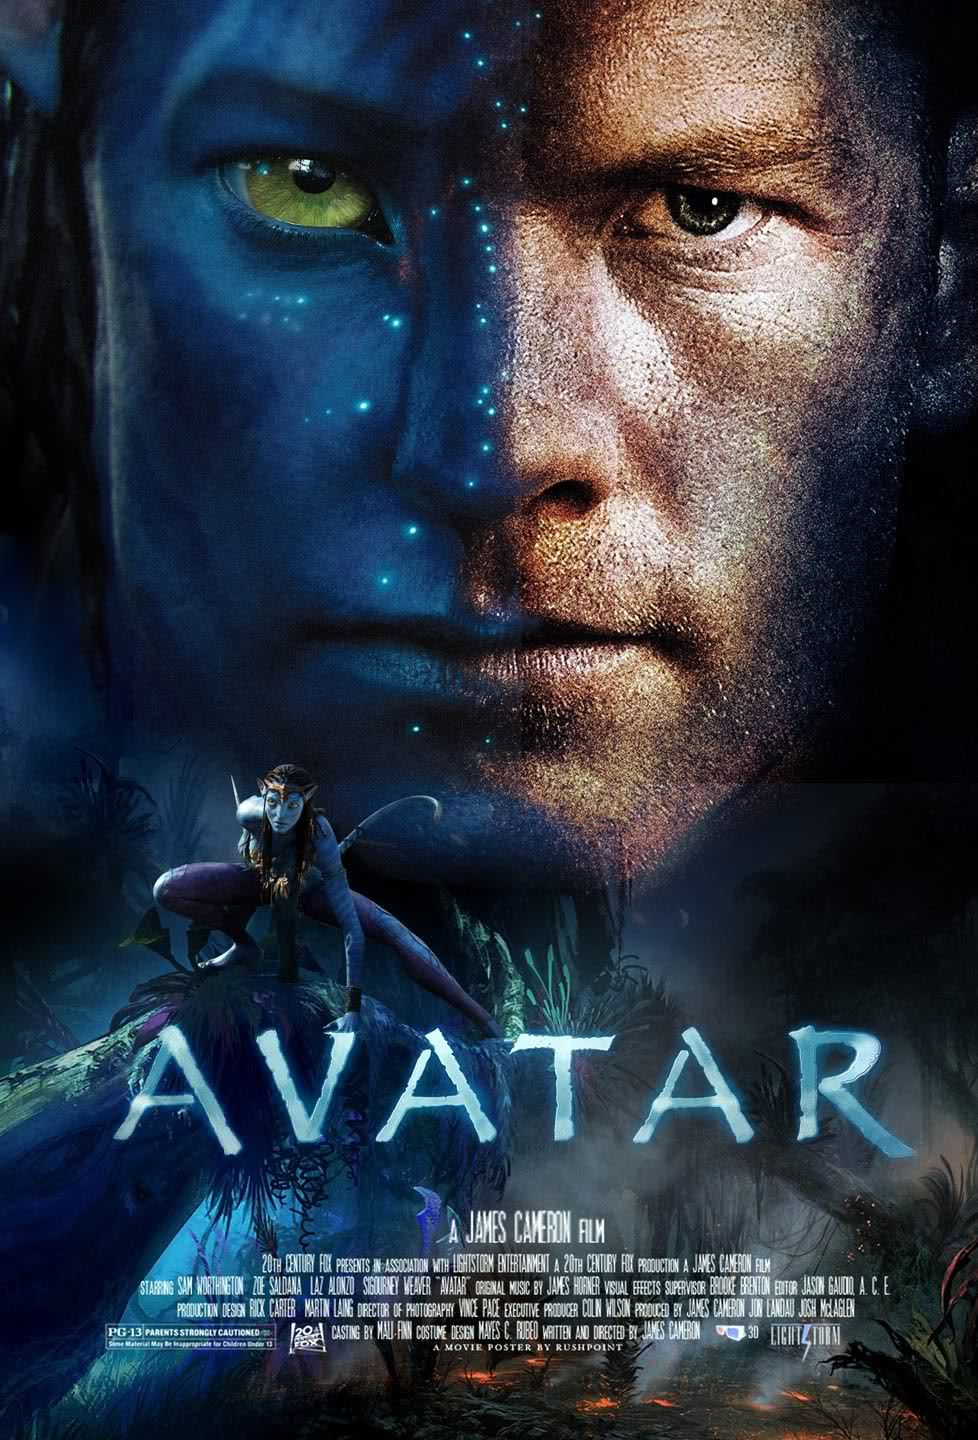 Story Structure Analysis Avatar Movie Six Act Structure